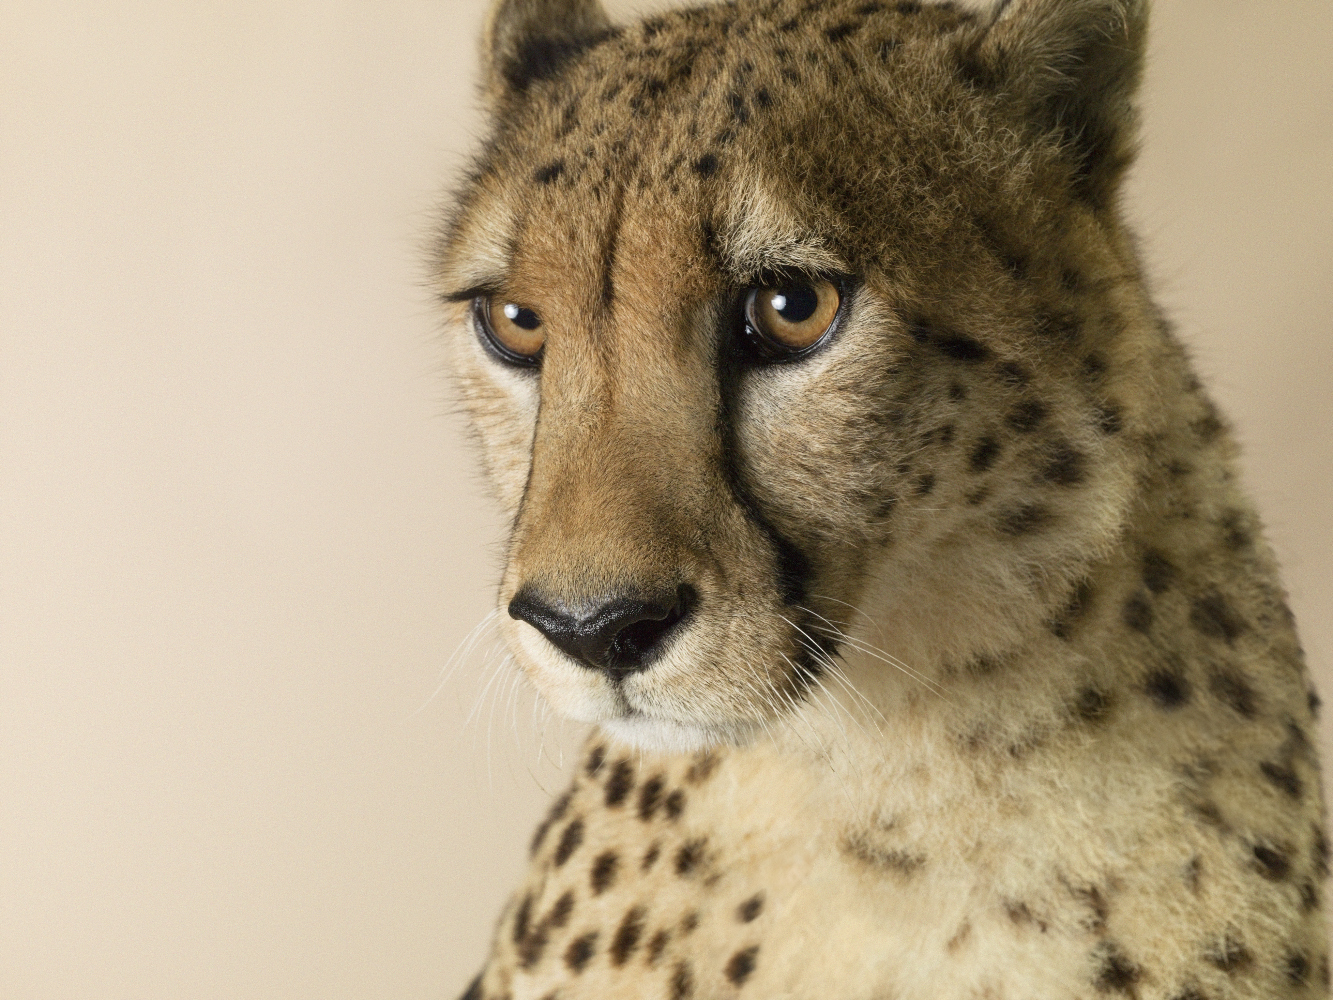 Dominic Marley Cheetah portrait